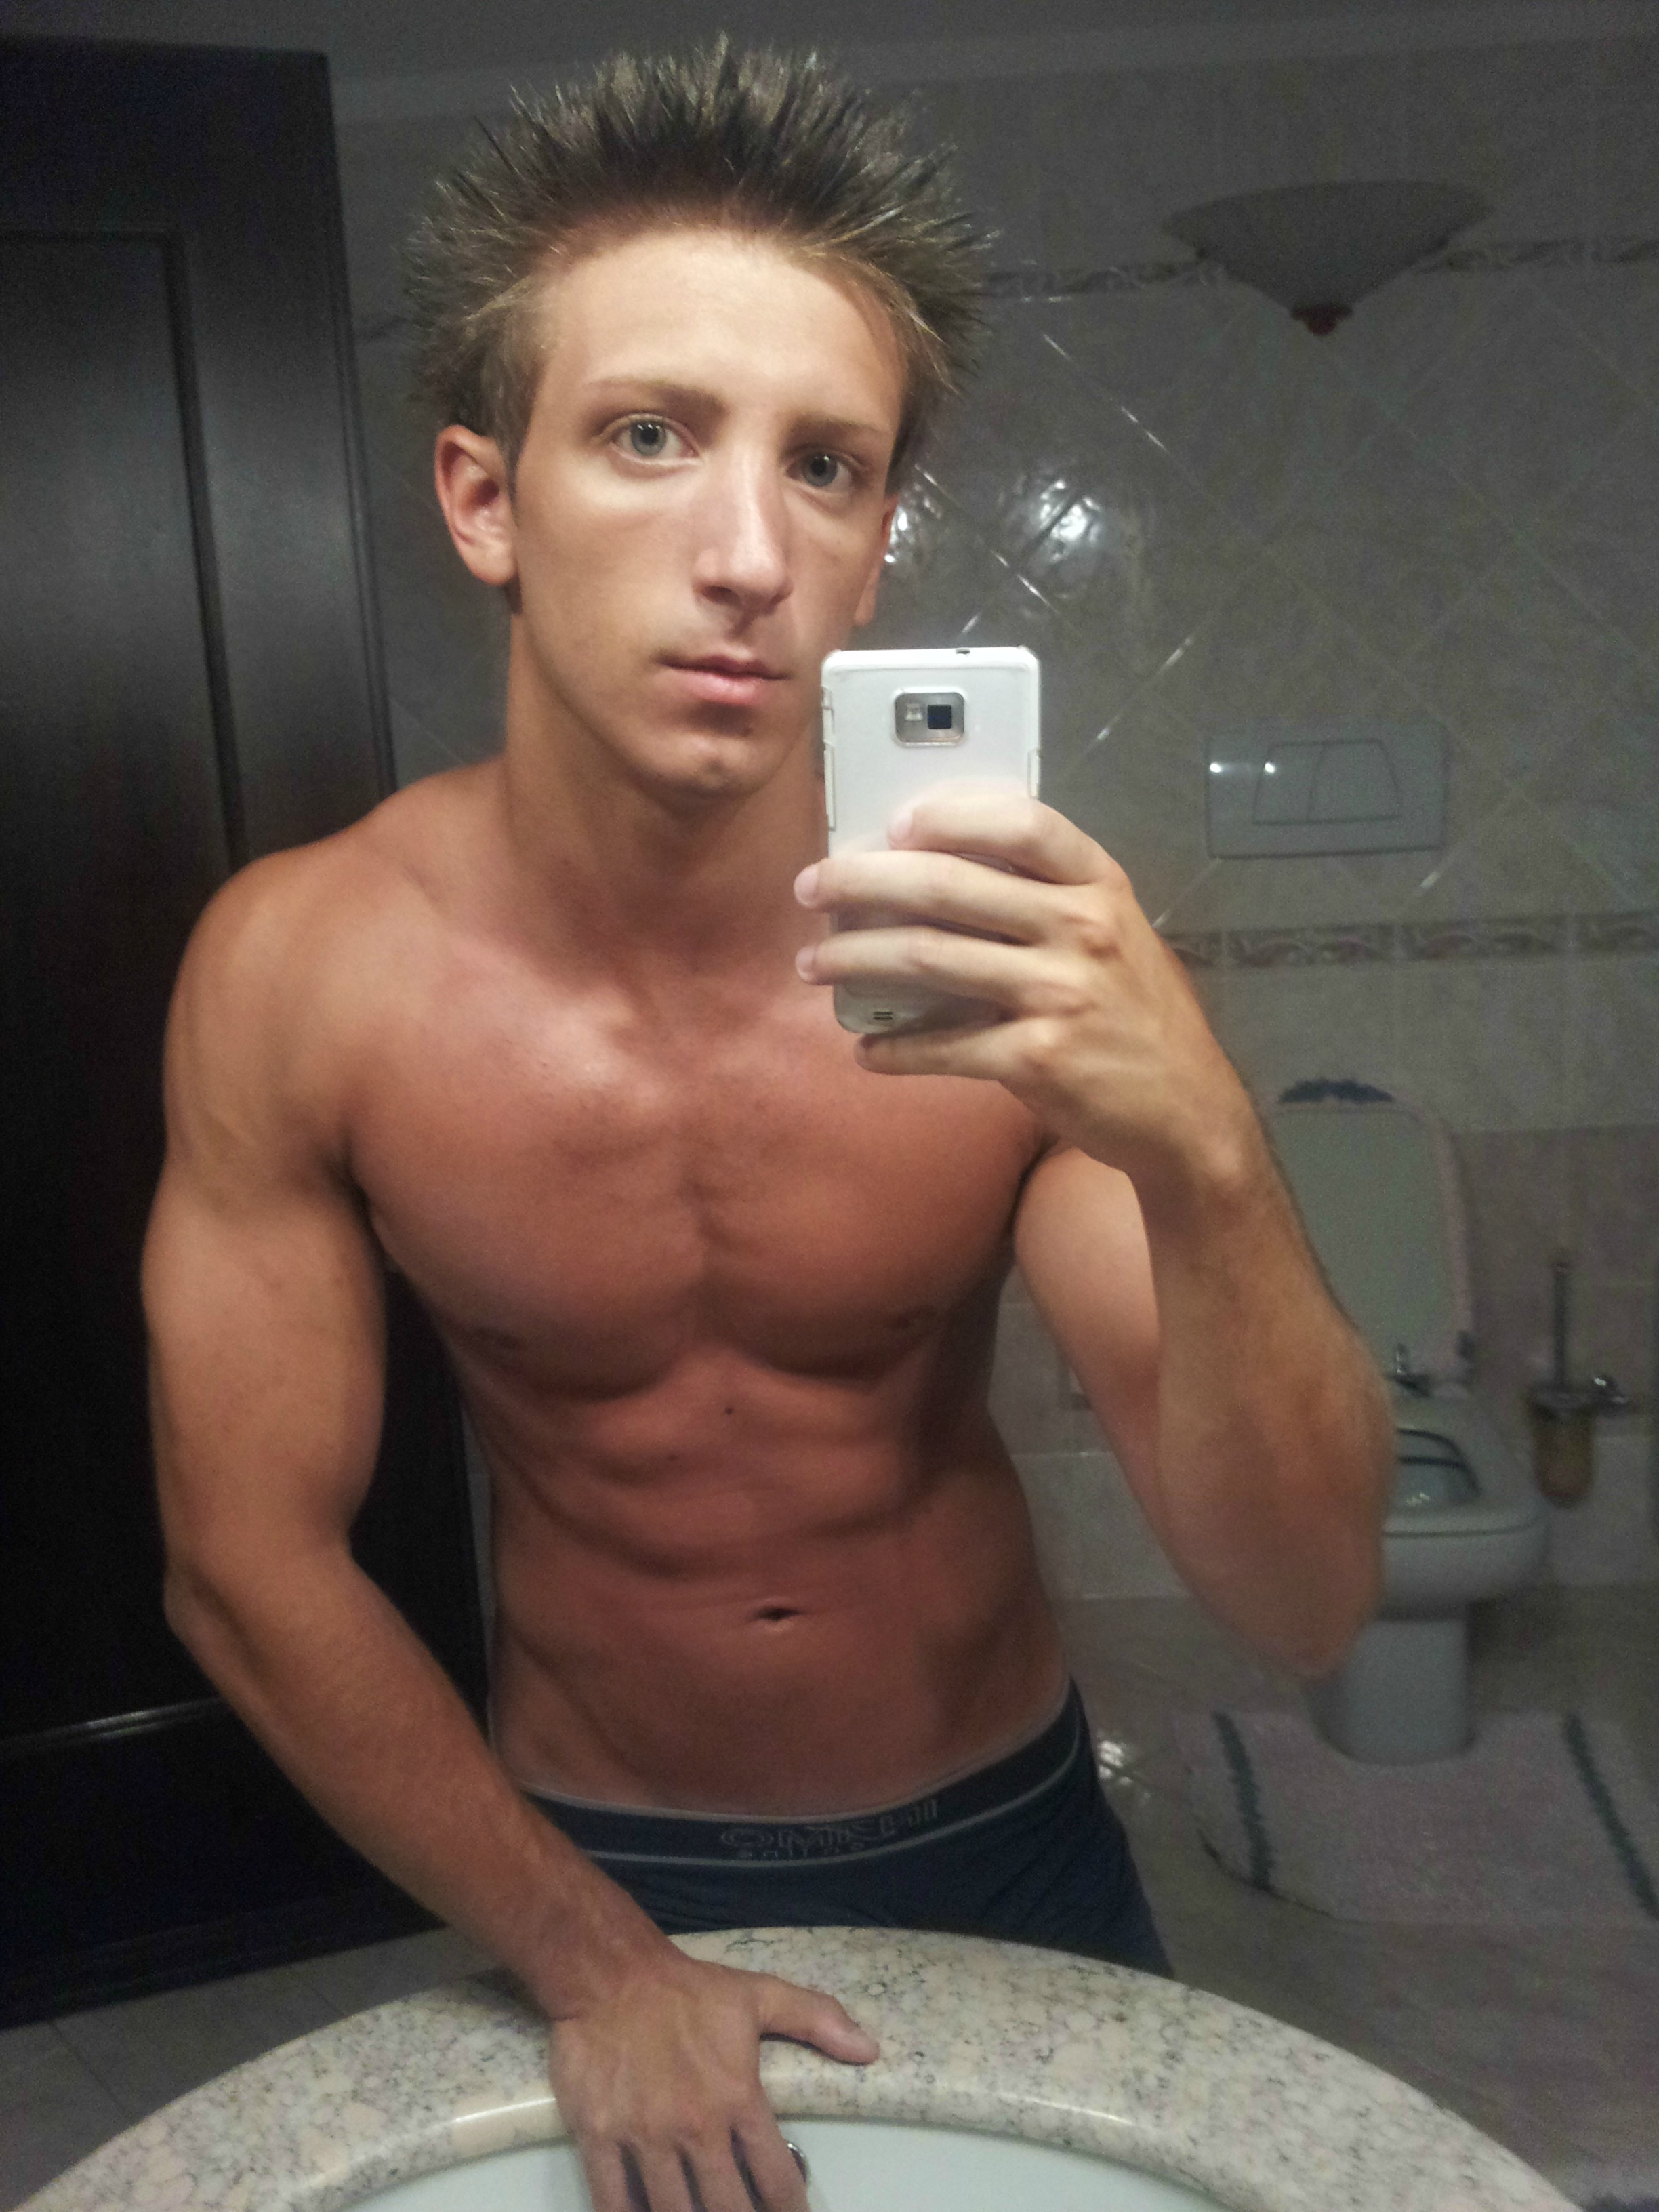 anabolic halo before or after workout